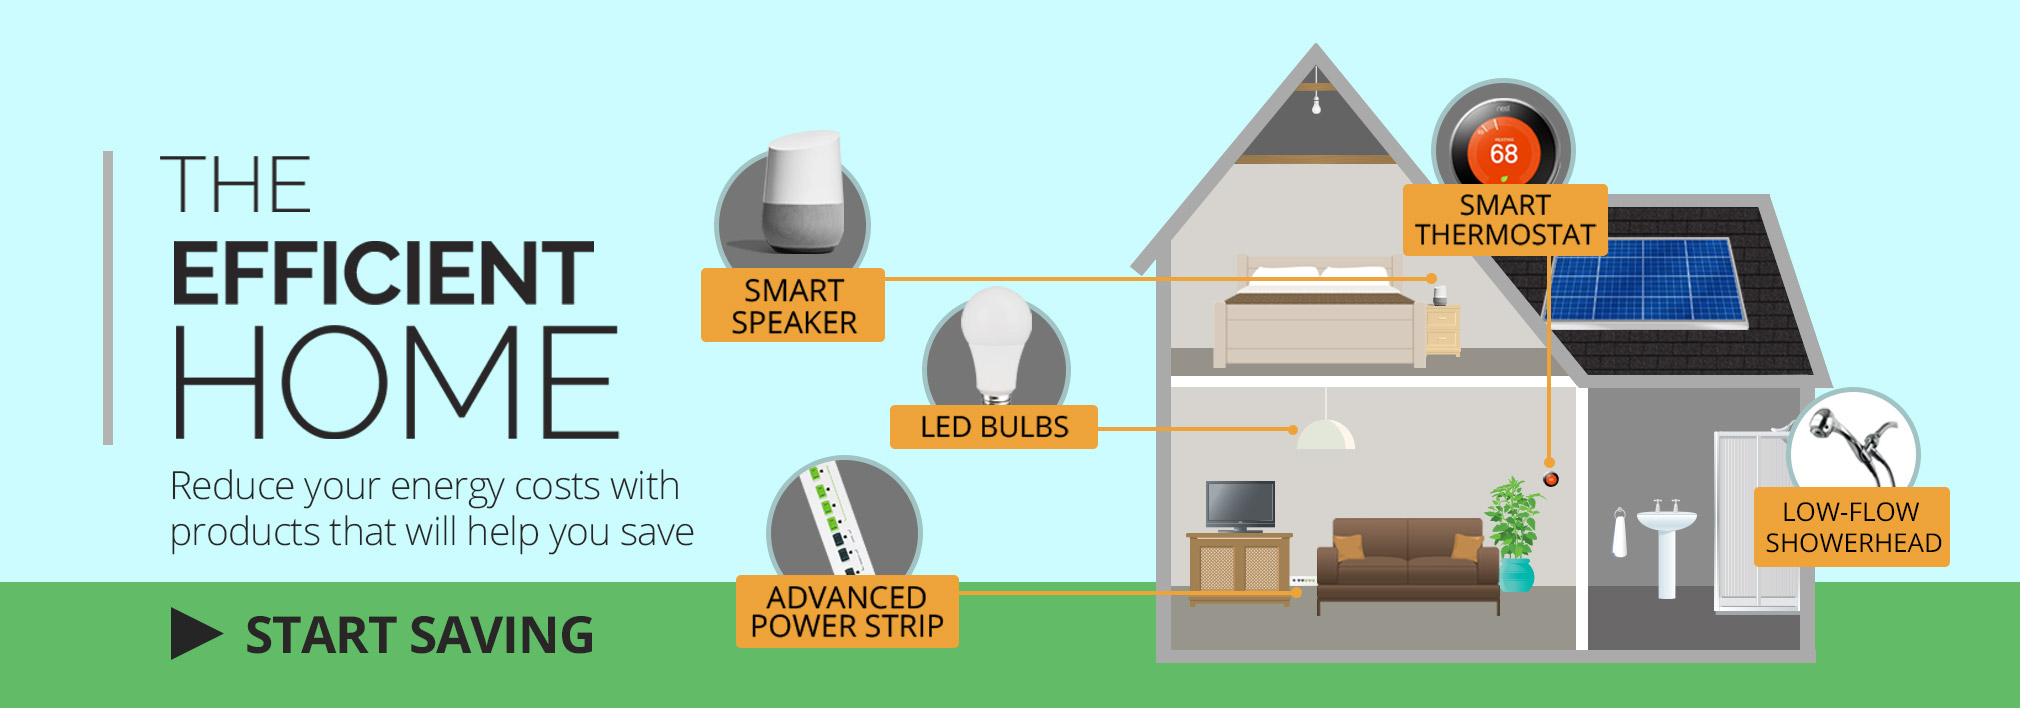 Reduce your energy costs with products that will help you save.